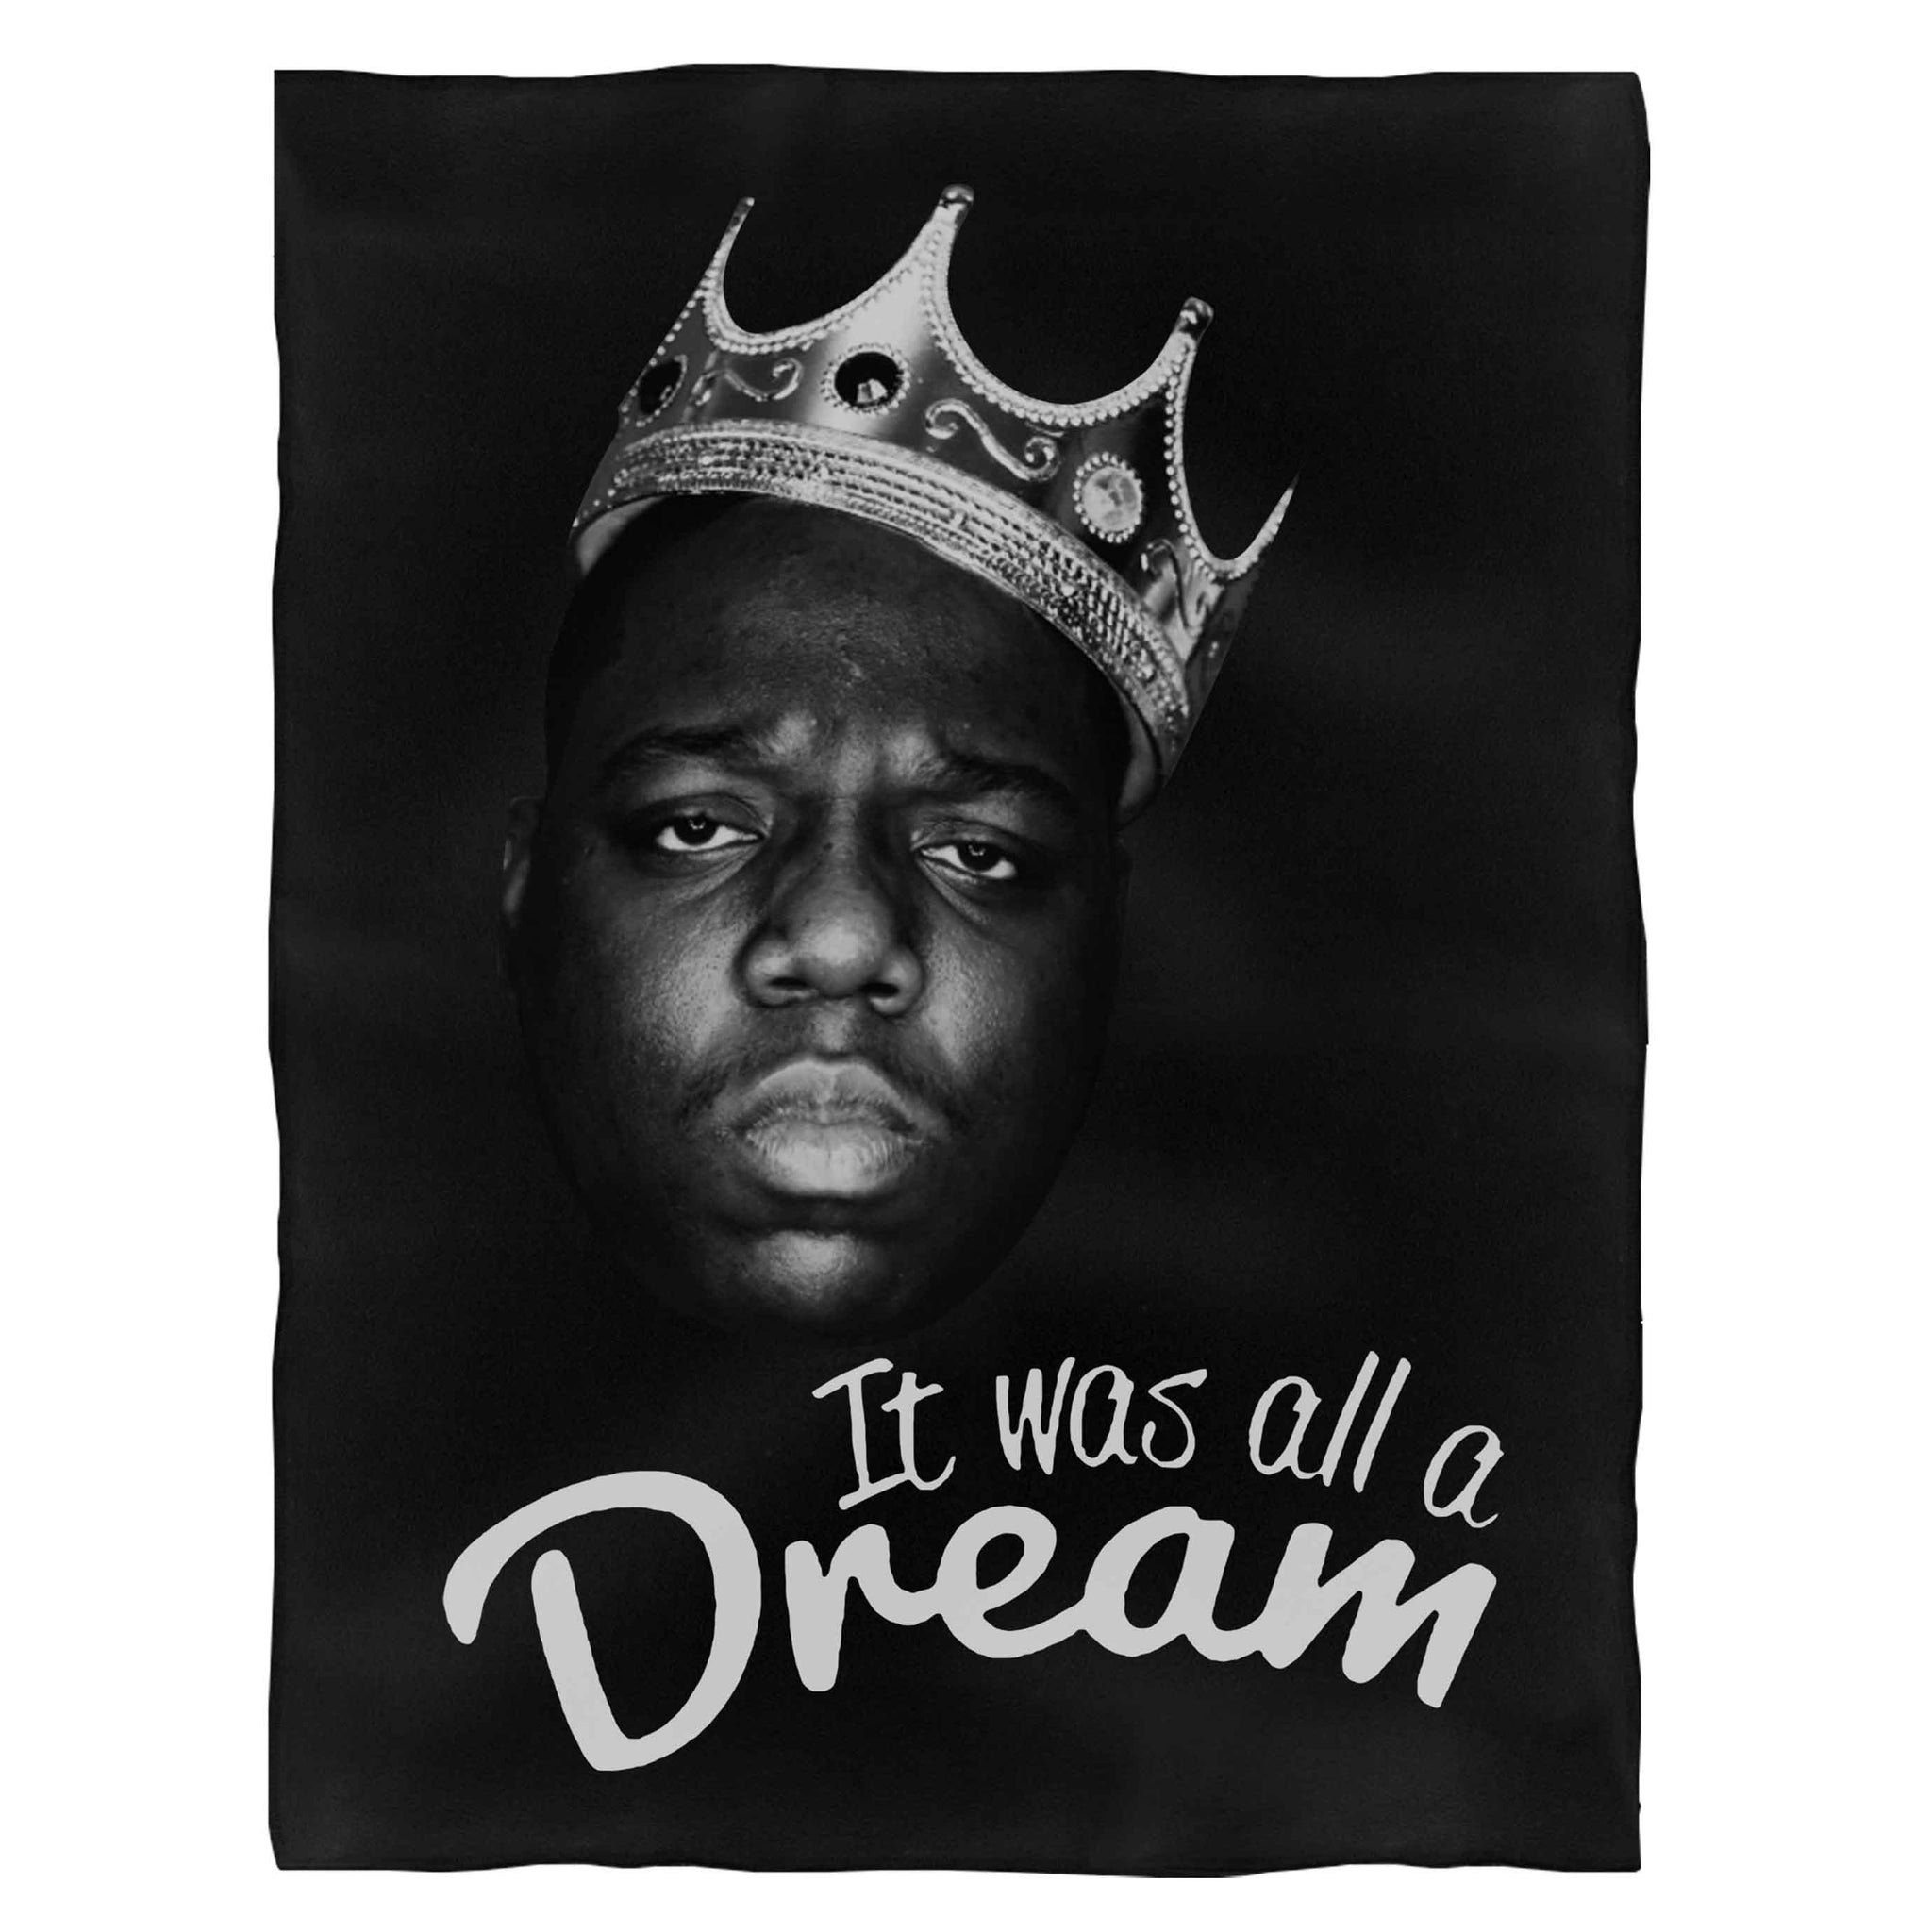 The Notorious Big Biggie Smalls It Was All A Dream Fleece Blanket